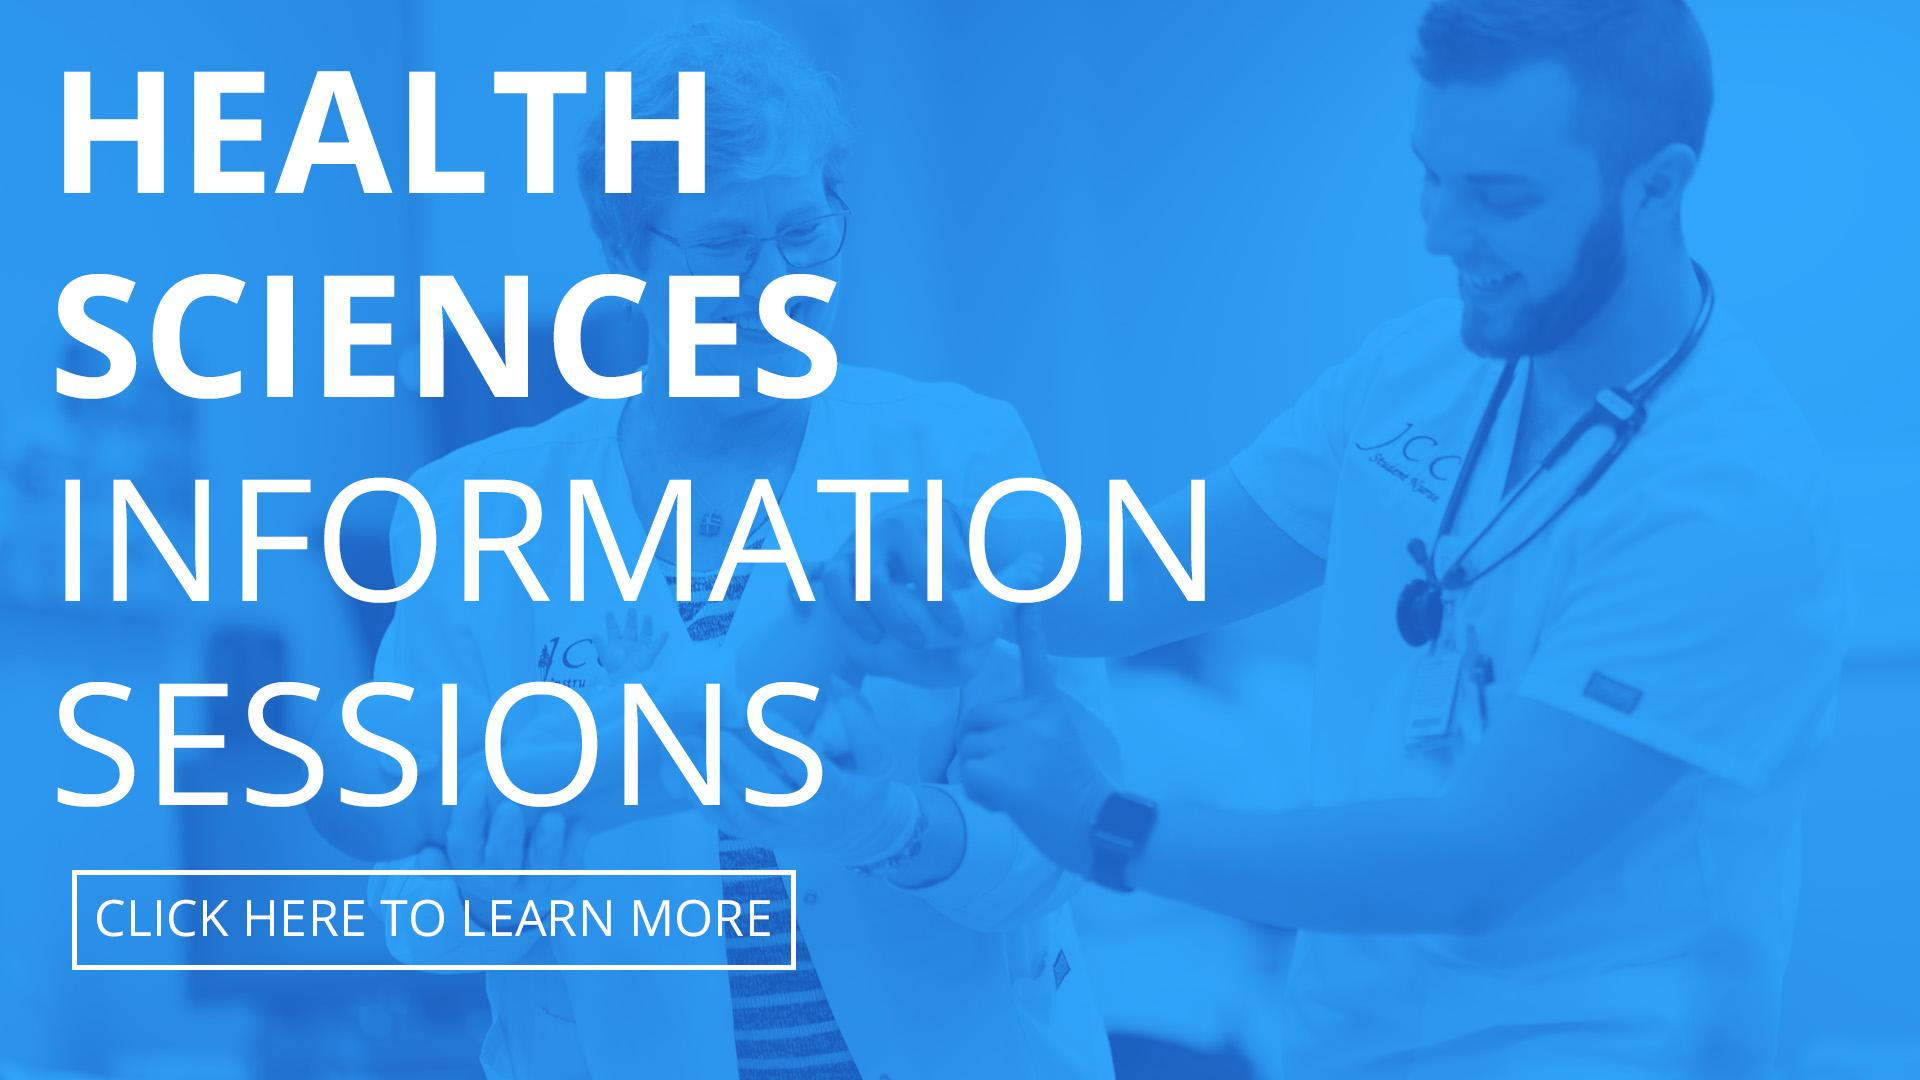 Health Sciences Information Session. Click here to learn more.